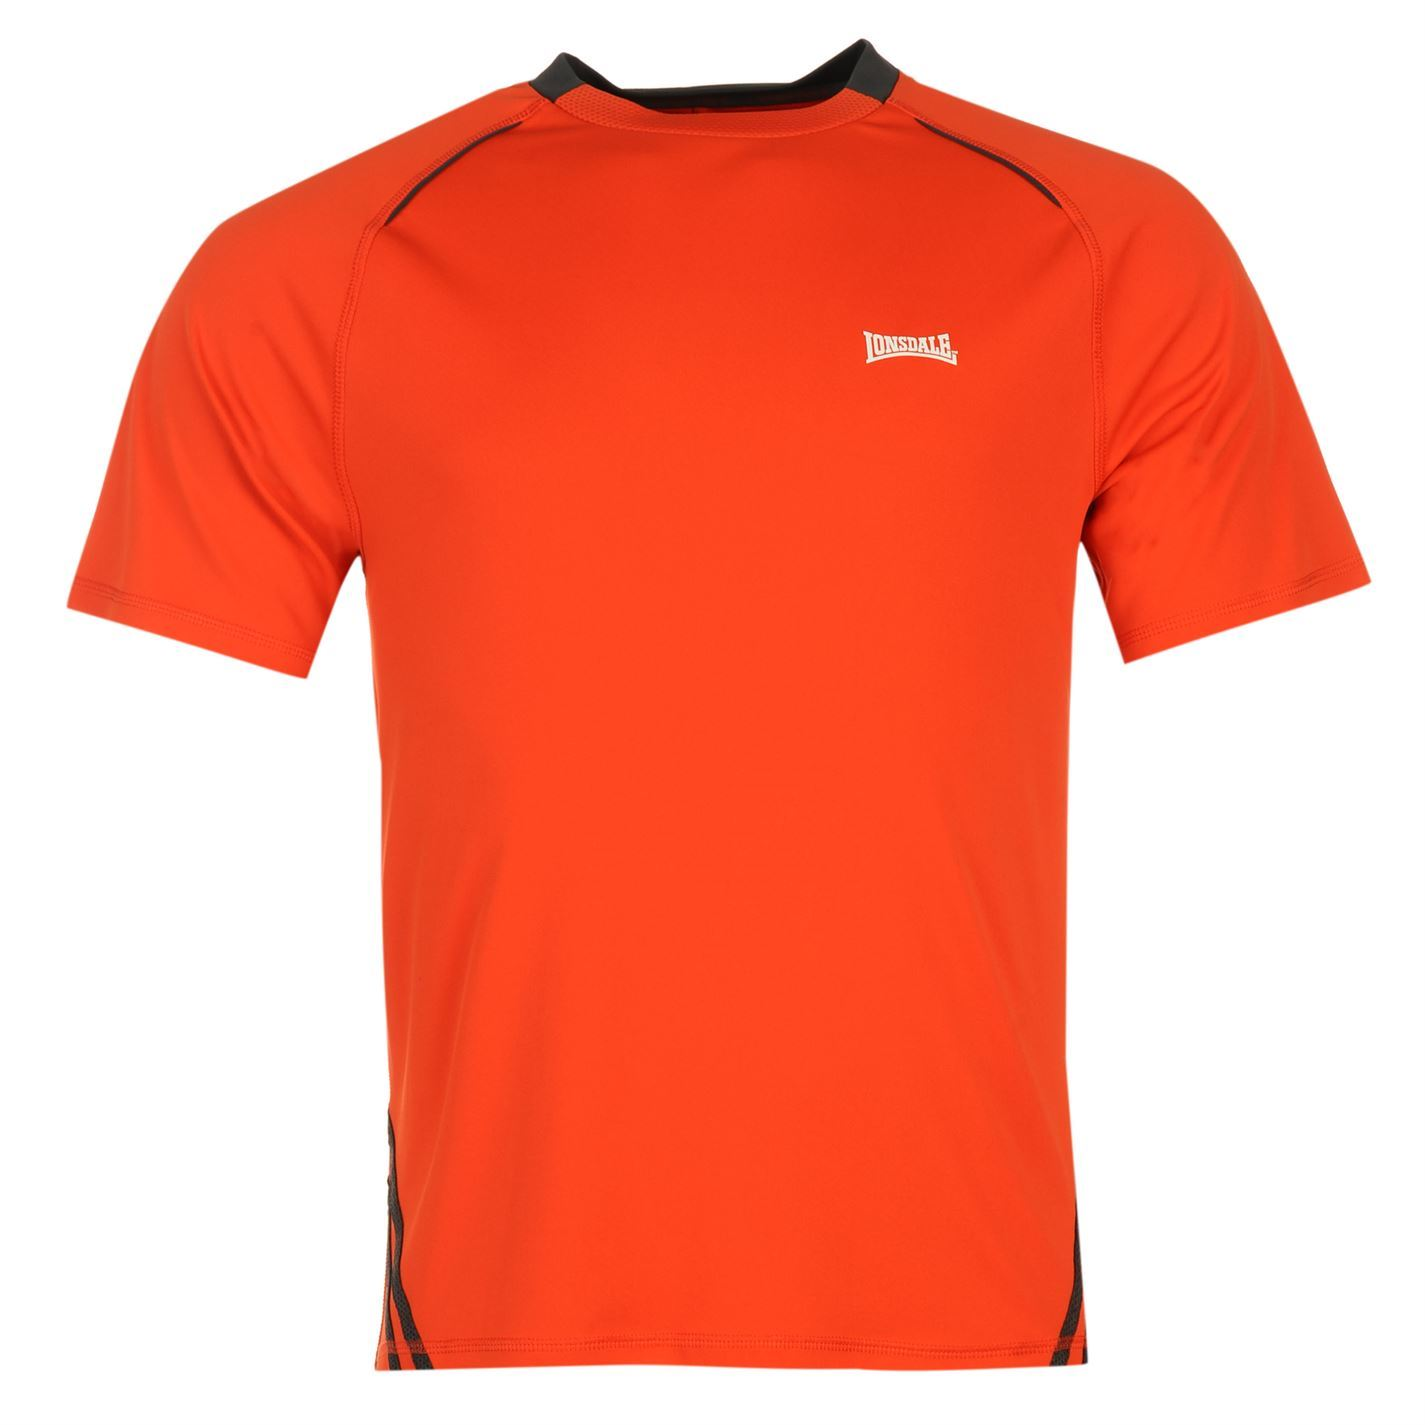 lonsdale training t shirt mens orange top tee shirt ebay. Black Bedroom Furniture Sets. Home Design Ideas